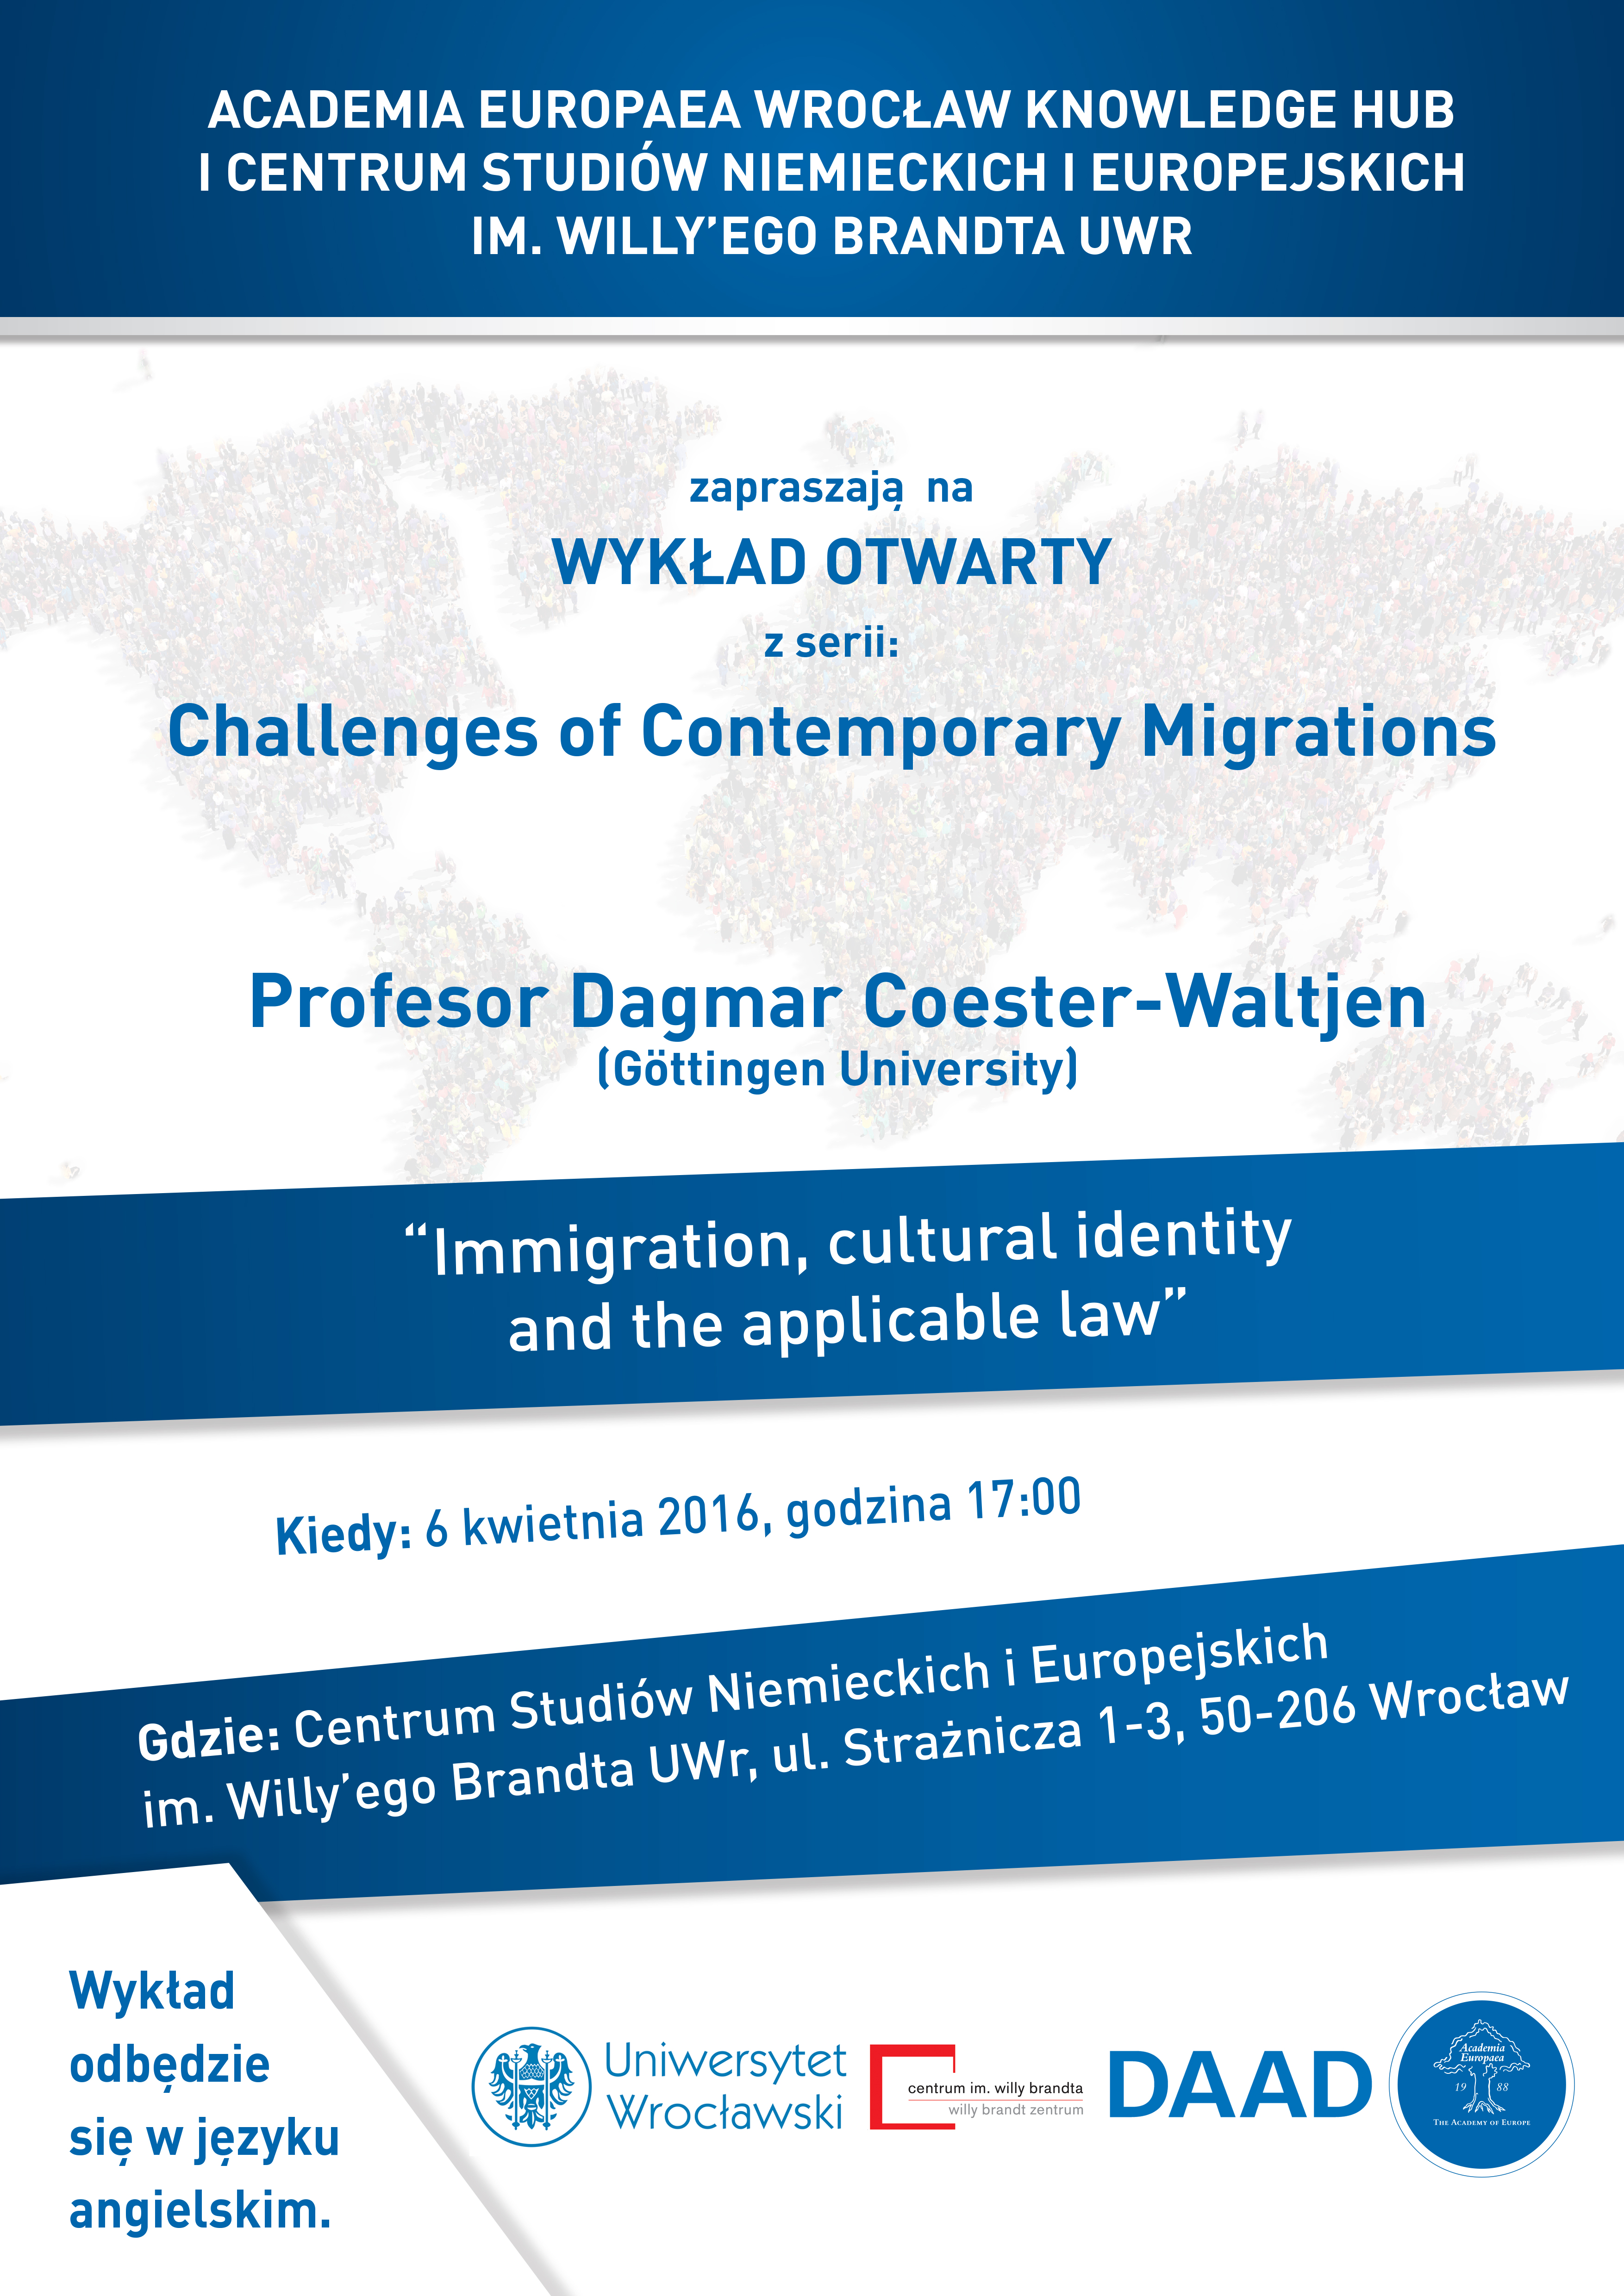 "immigration, cultural identity and the applicable law – pierwszy wykład z cyklu ""challenges of contemporary migrations"""